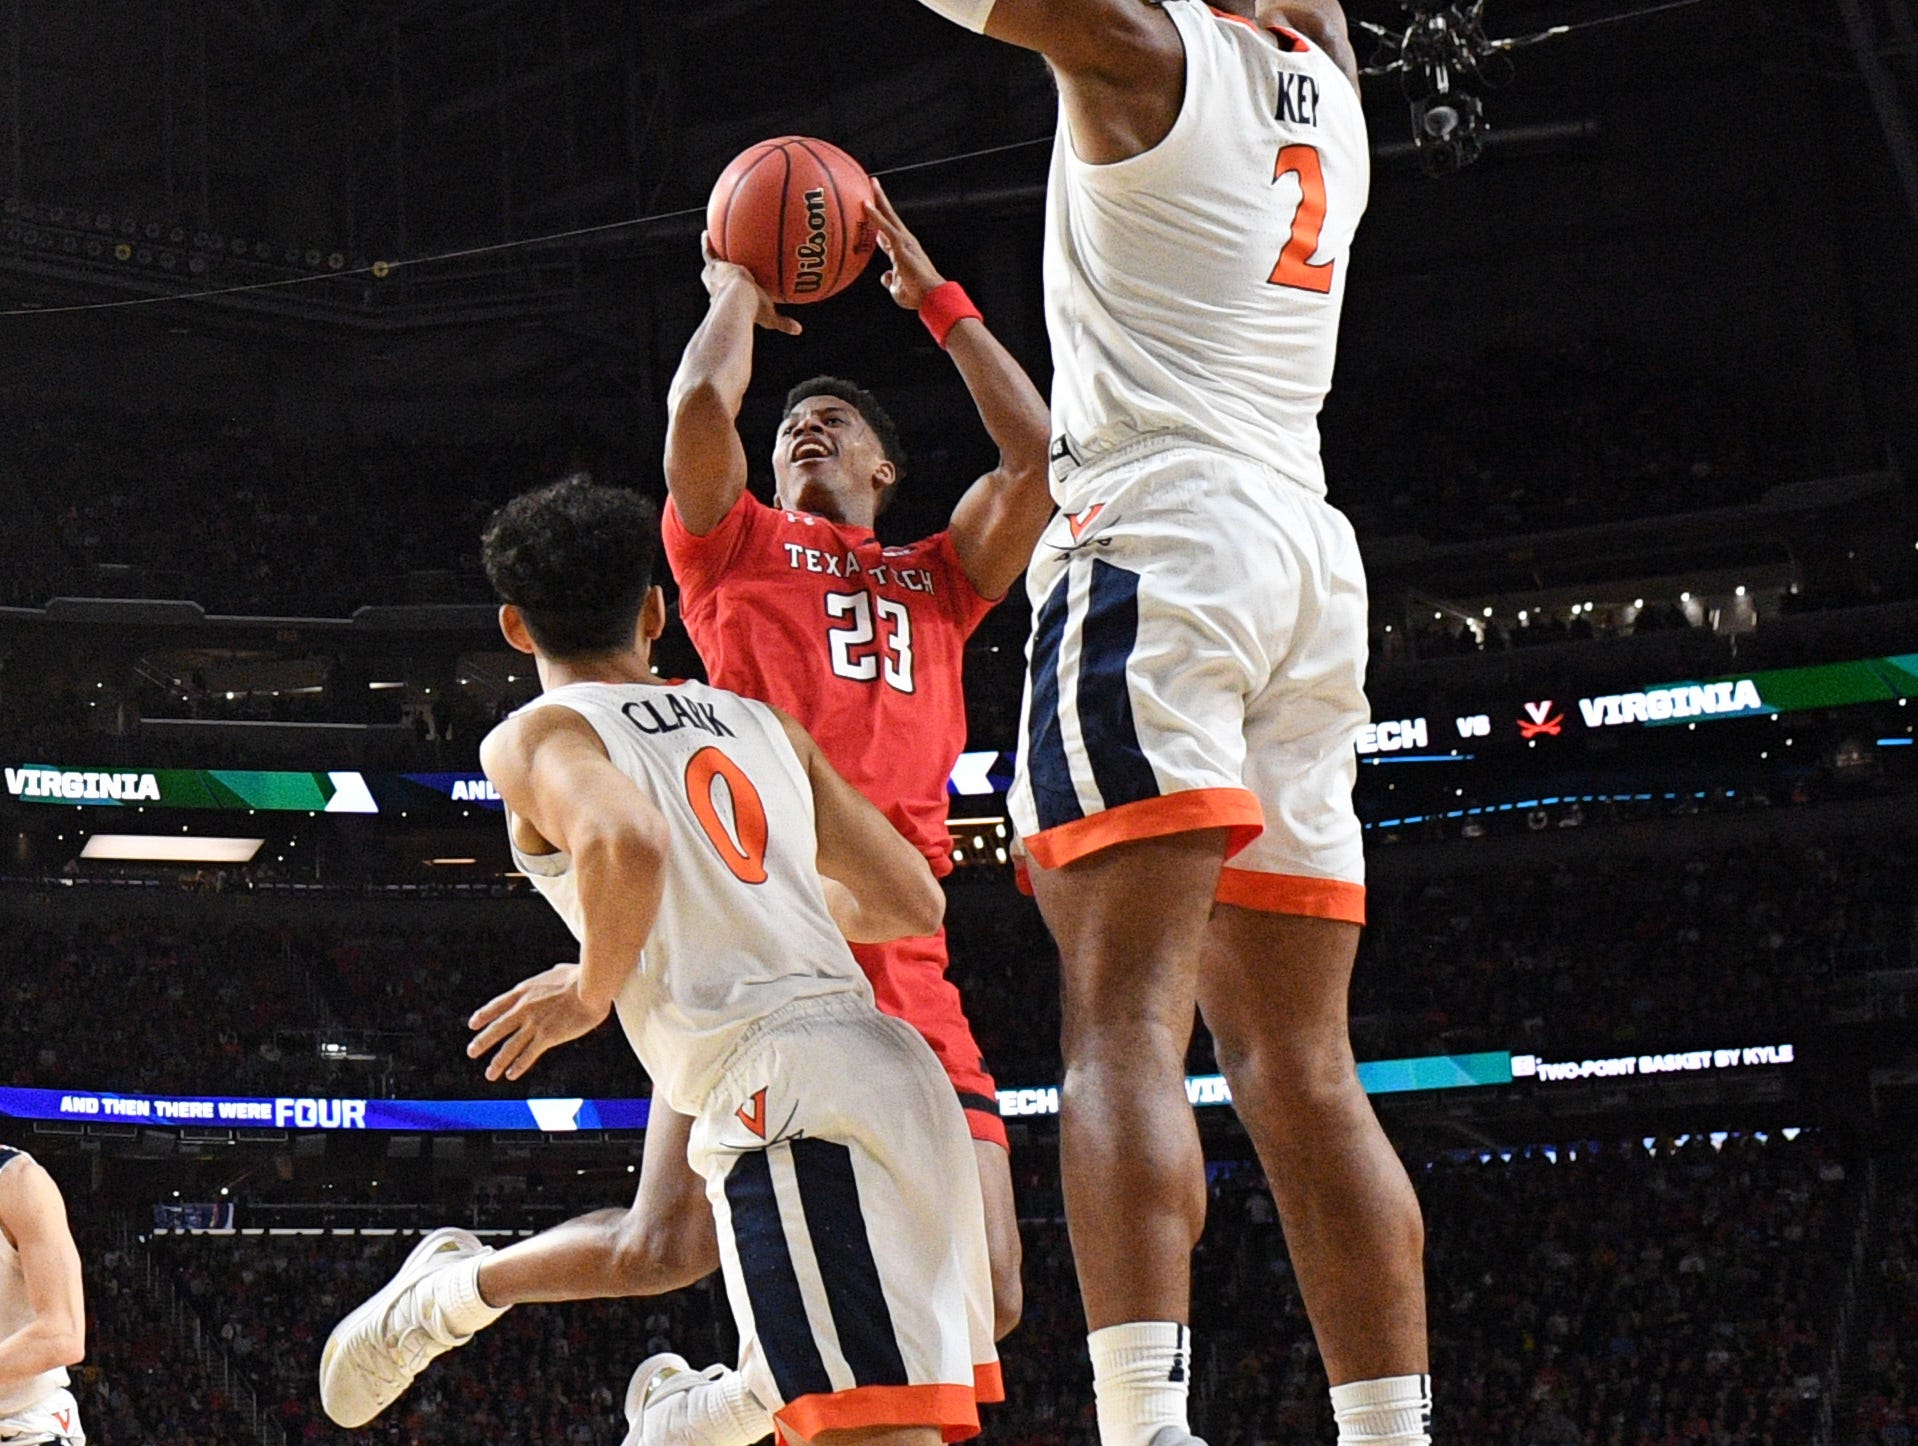 Apr 8, 2019; Minneapolis, MN, USA; Texas Tech Red Raiders guard Jarrett Culver (23) shoots the ball defended by Virginia Cavaliers guard Braxton Key (2) and guard Kihei Clark (0) in the championship game of the 2019 men's Final Four at US Bank Stadium. Mandatory Credit: Robert Deutsch-USA TODAY Sports